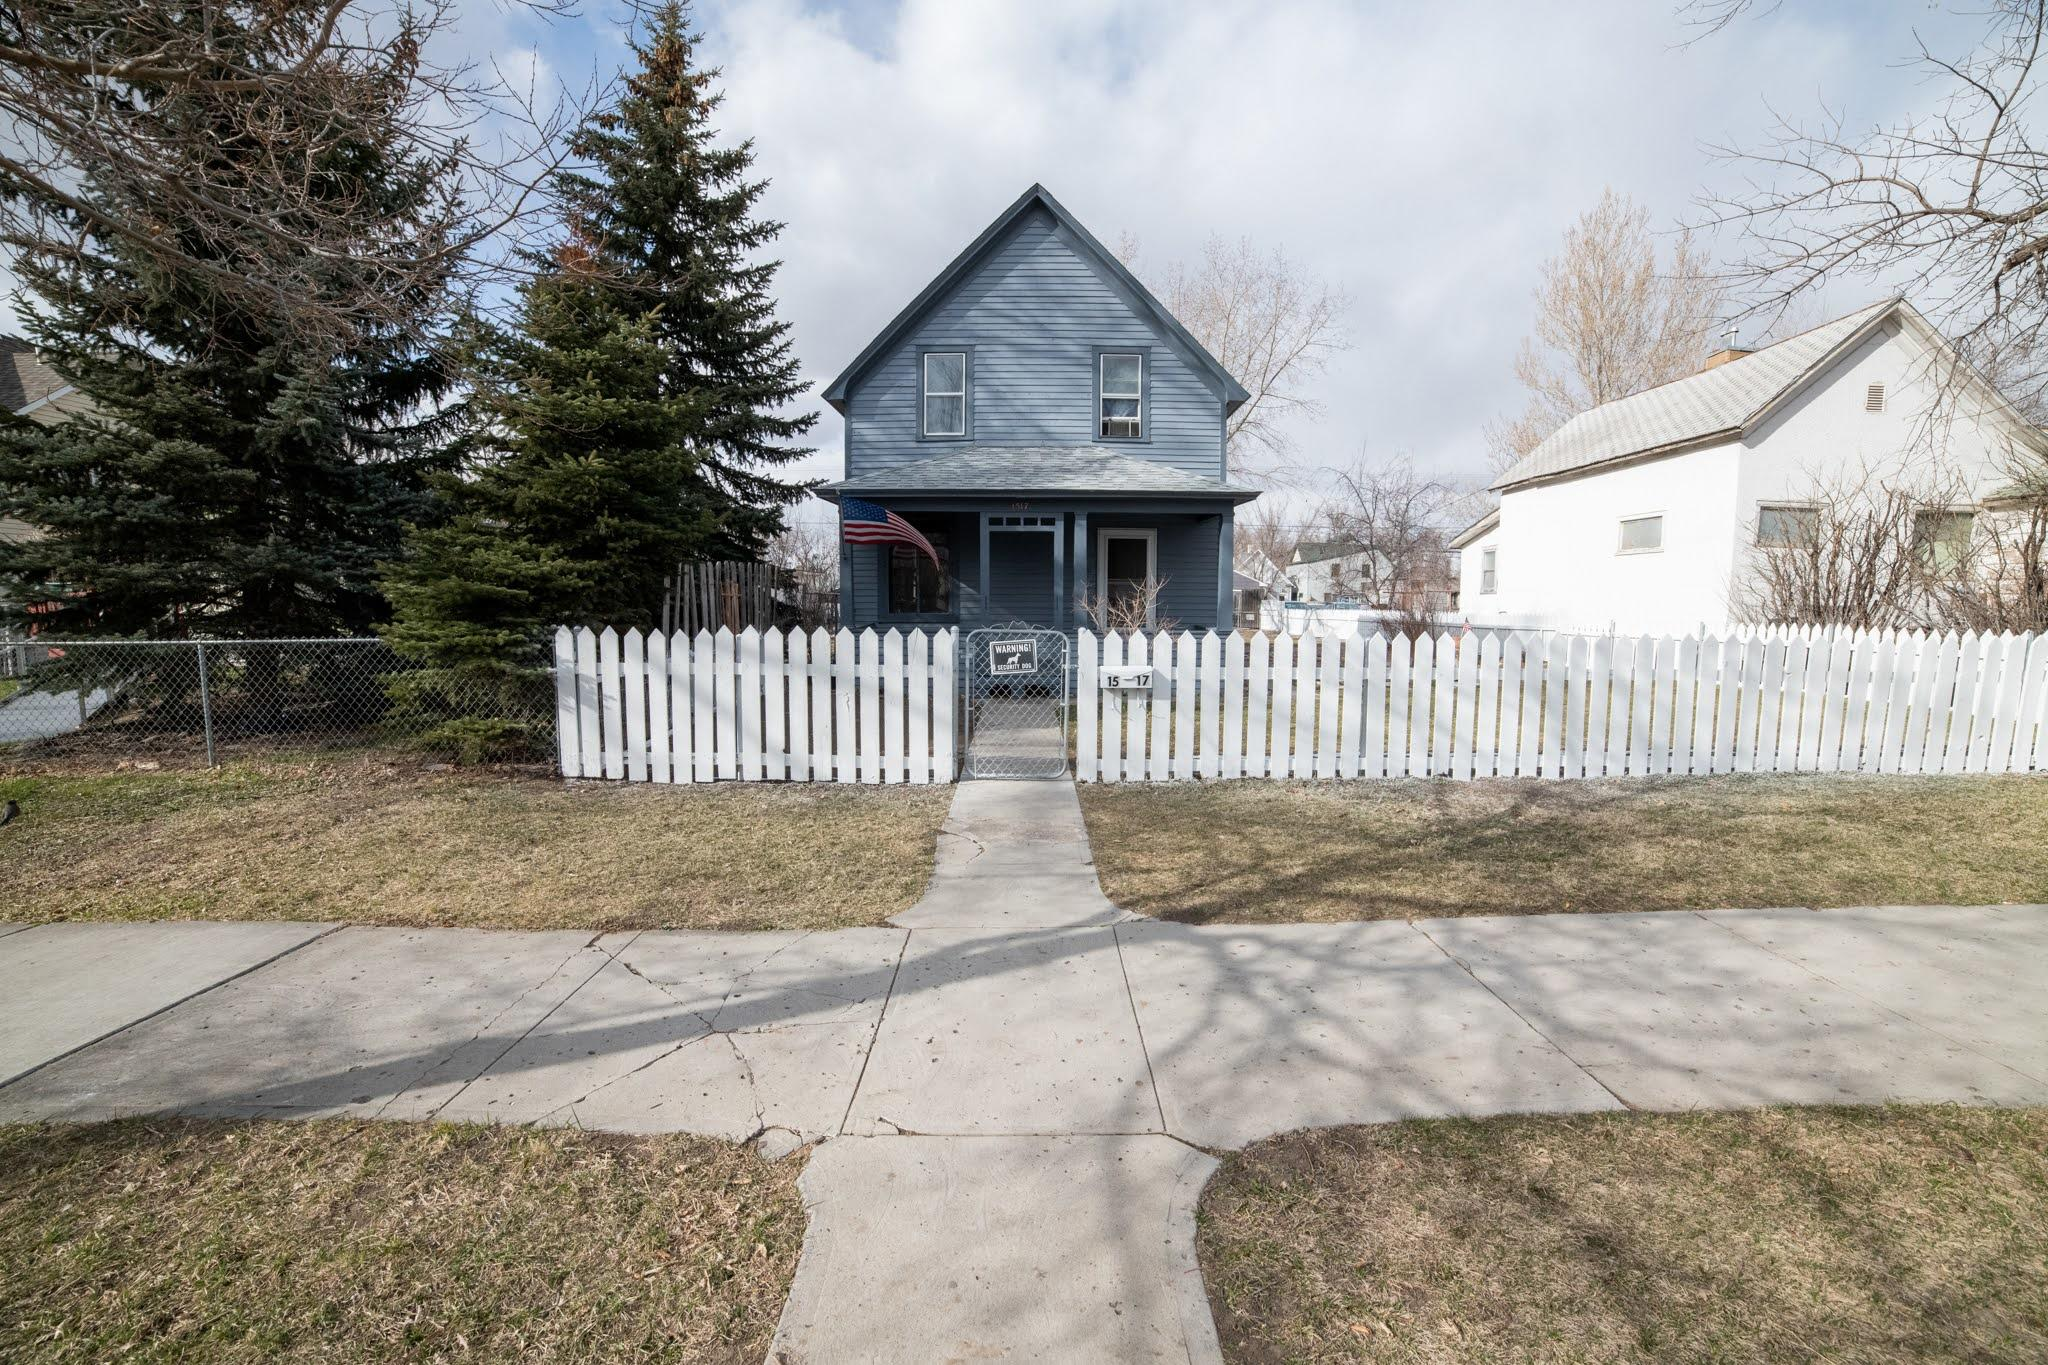 Did you say affordable and has potential?  Don't pass up this 3 bedroom 1 bath home with hard floors throughout, refinish them to your liking.  HUGE backyard that leads to a 1 car garage with extra workshop space.  Don't forget the extra parking room and dog run.  Call Jennifer Benski (406) 590-2099, or your real estate professional.